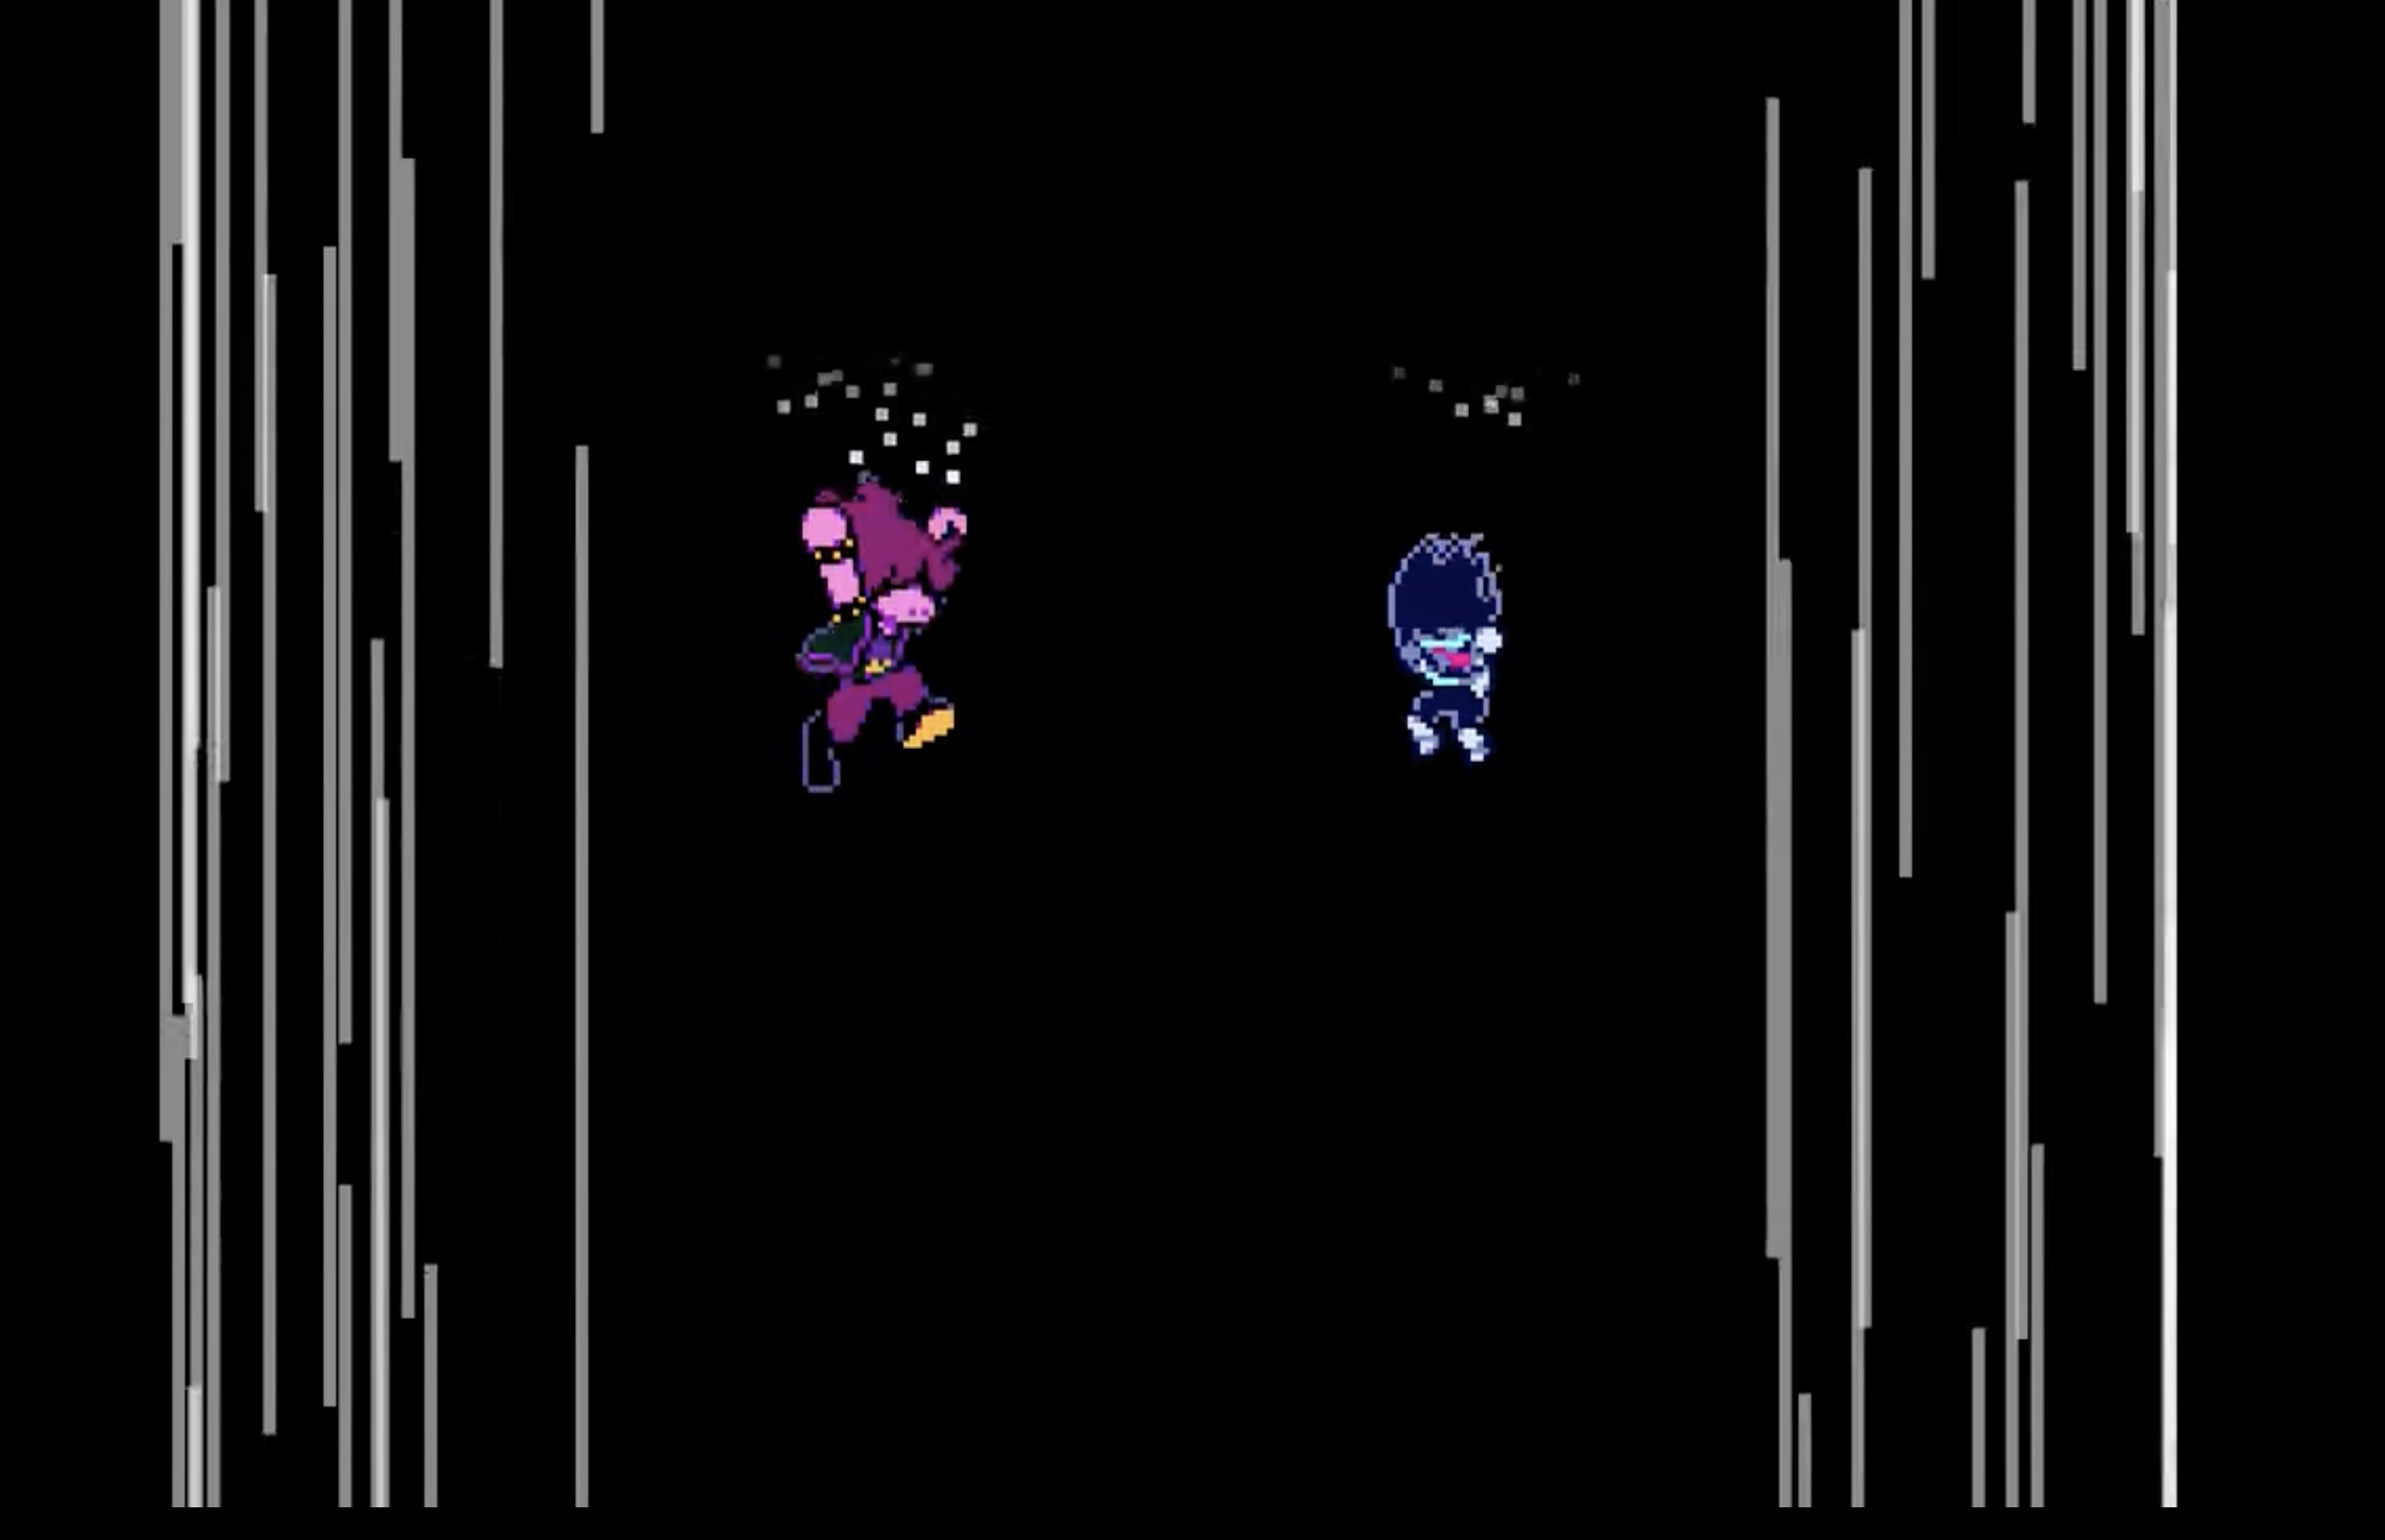 Kris and Susie from Deltarune falling into a pit